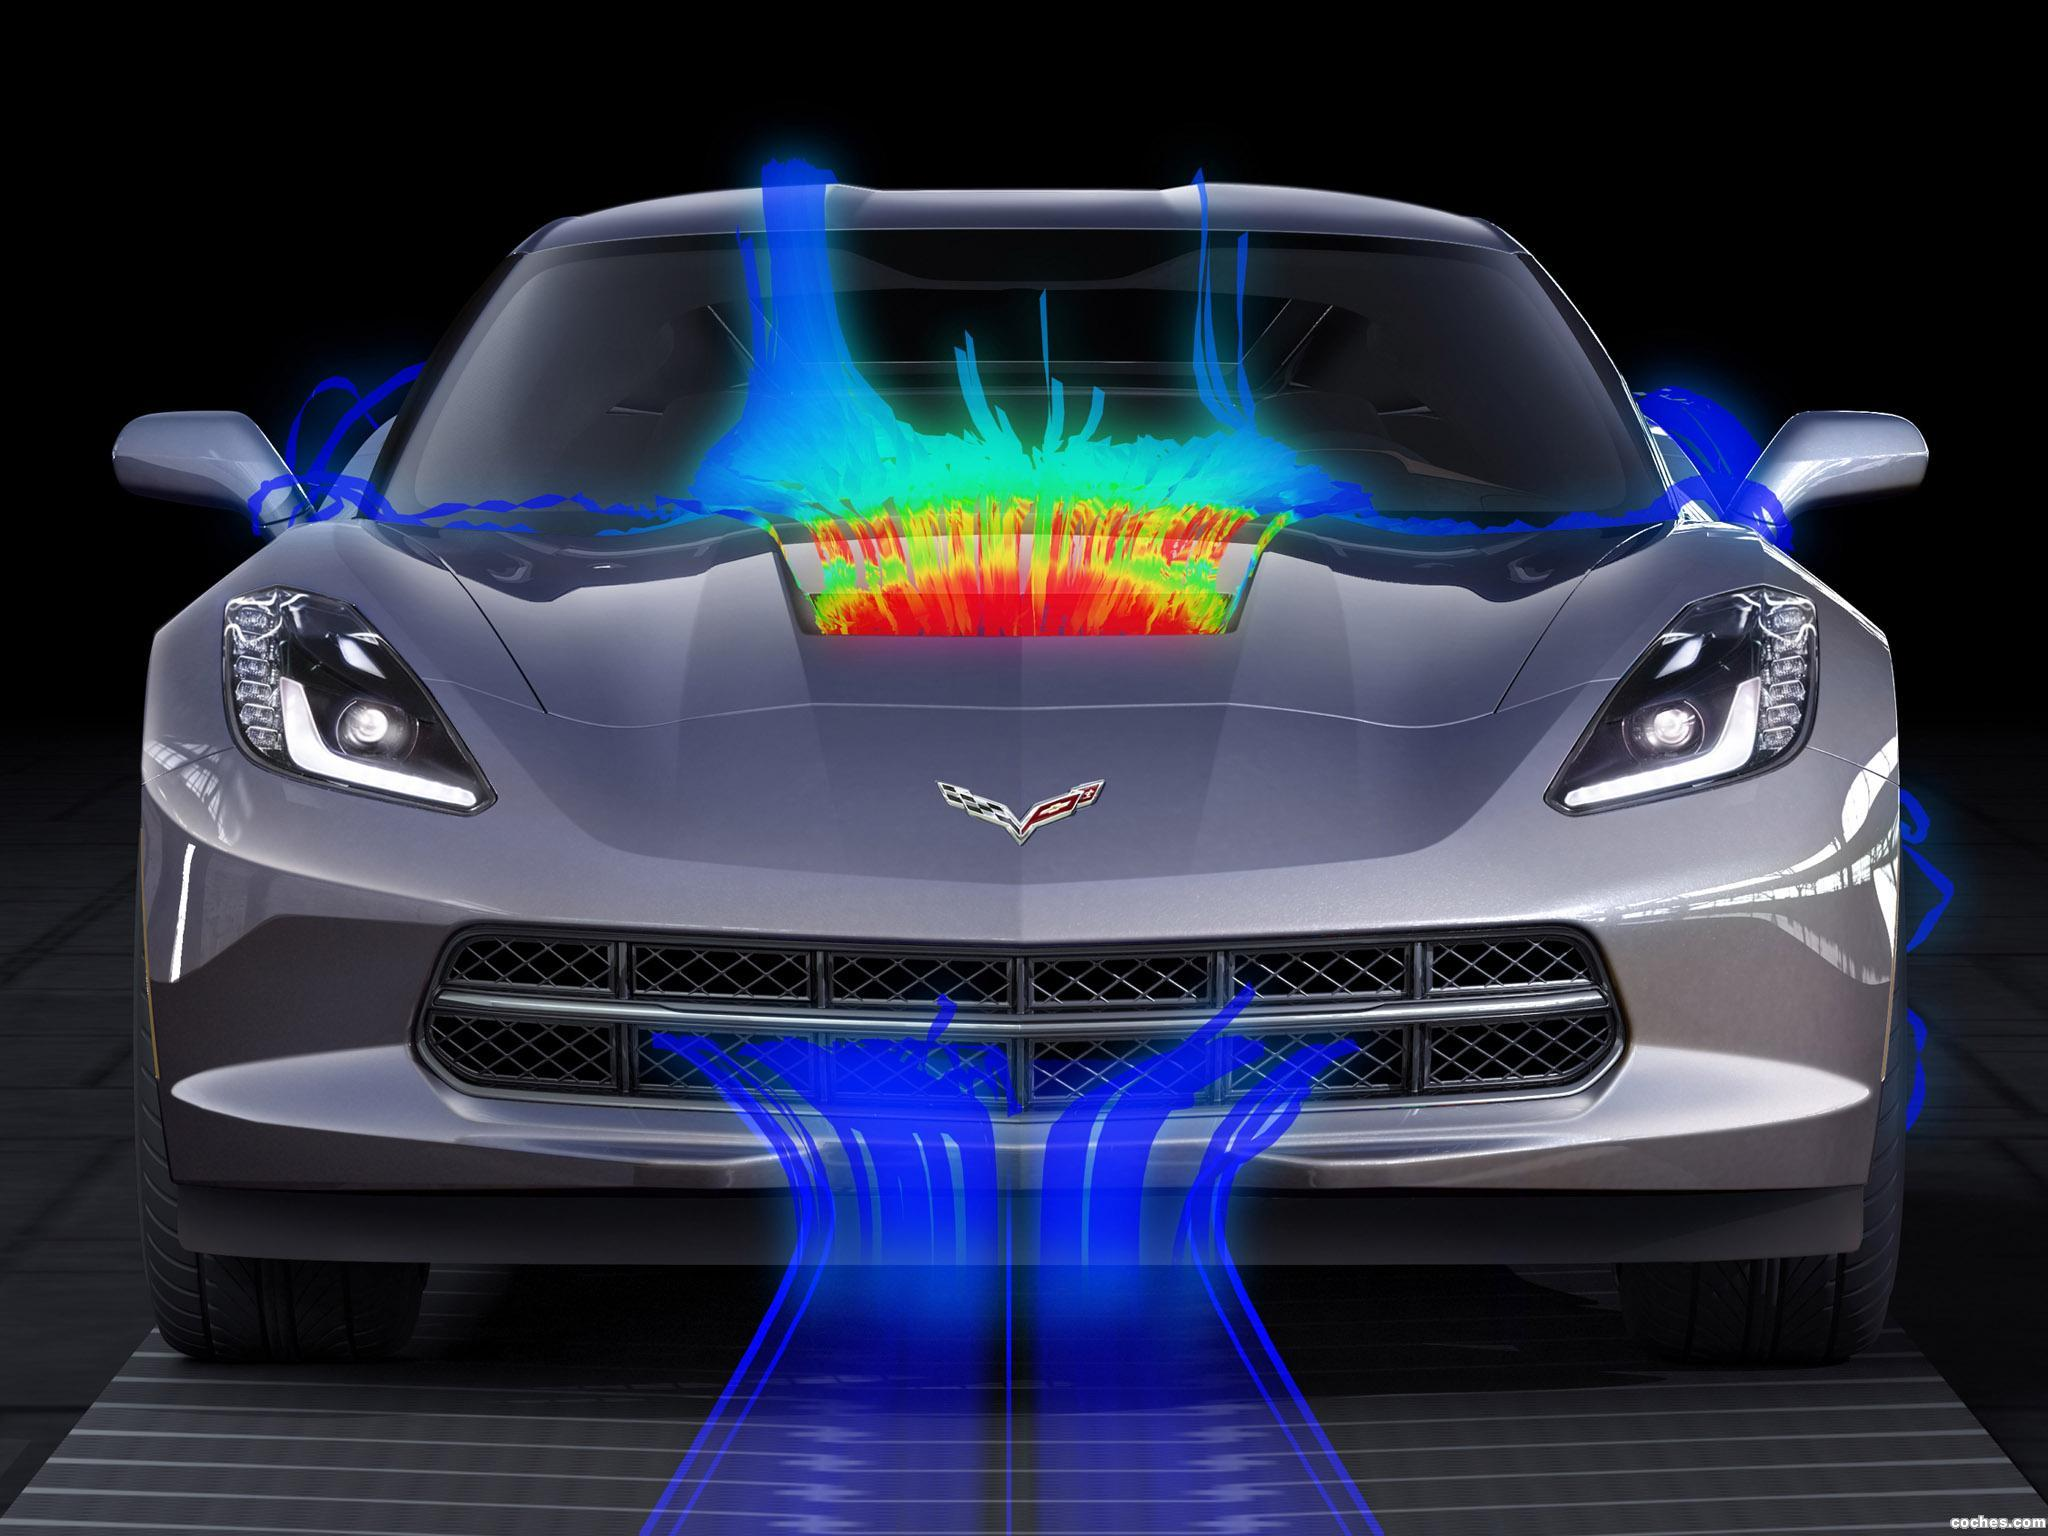 Foto 6 de Chevrolet Corvette Stingray C7 2014